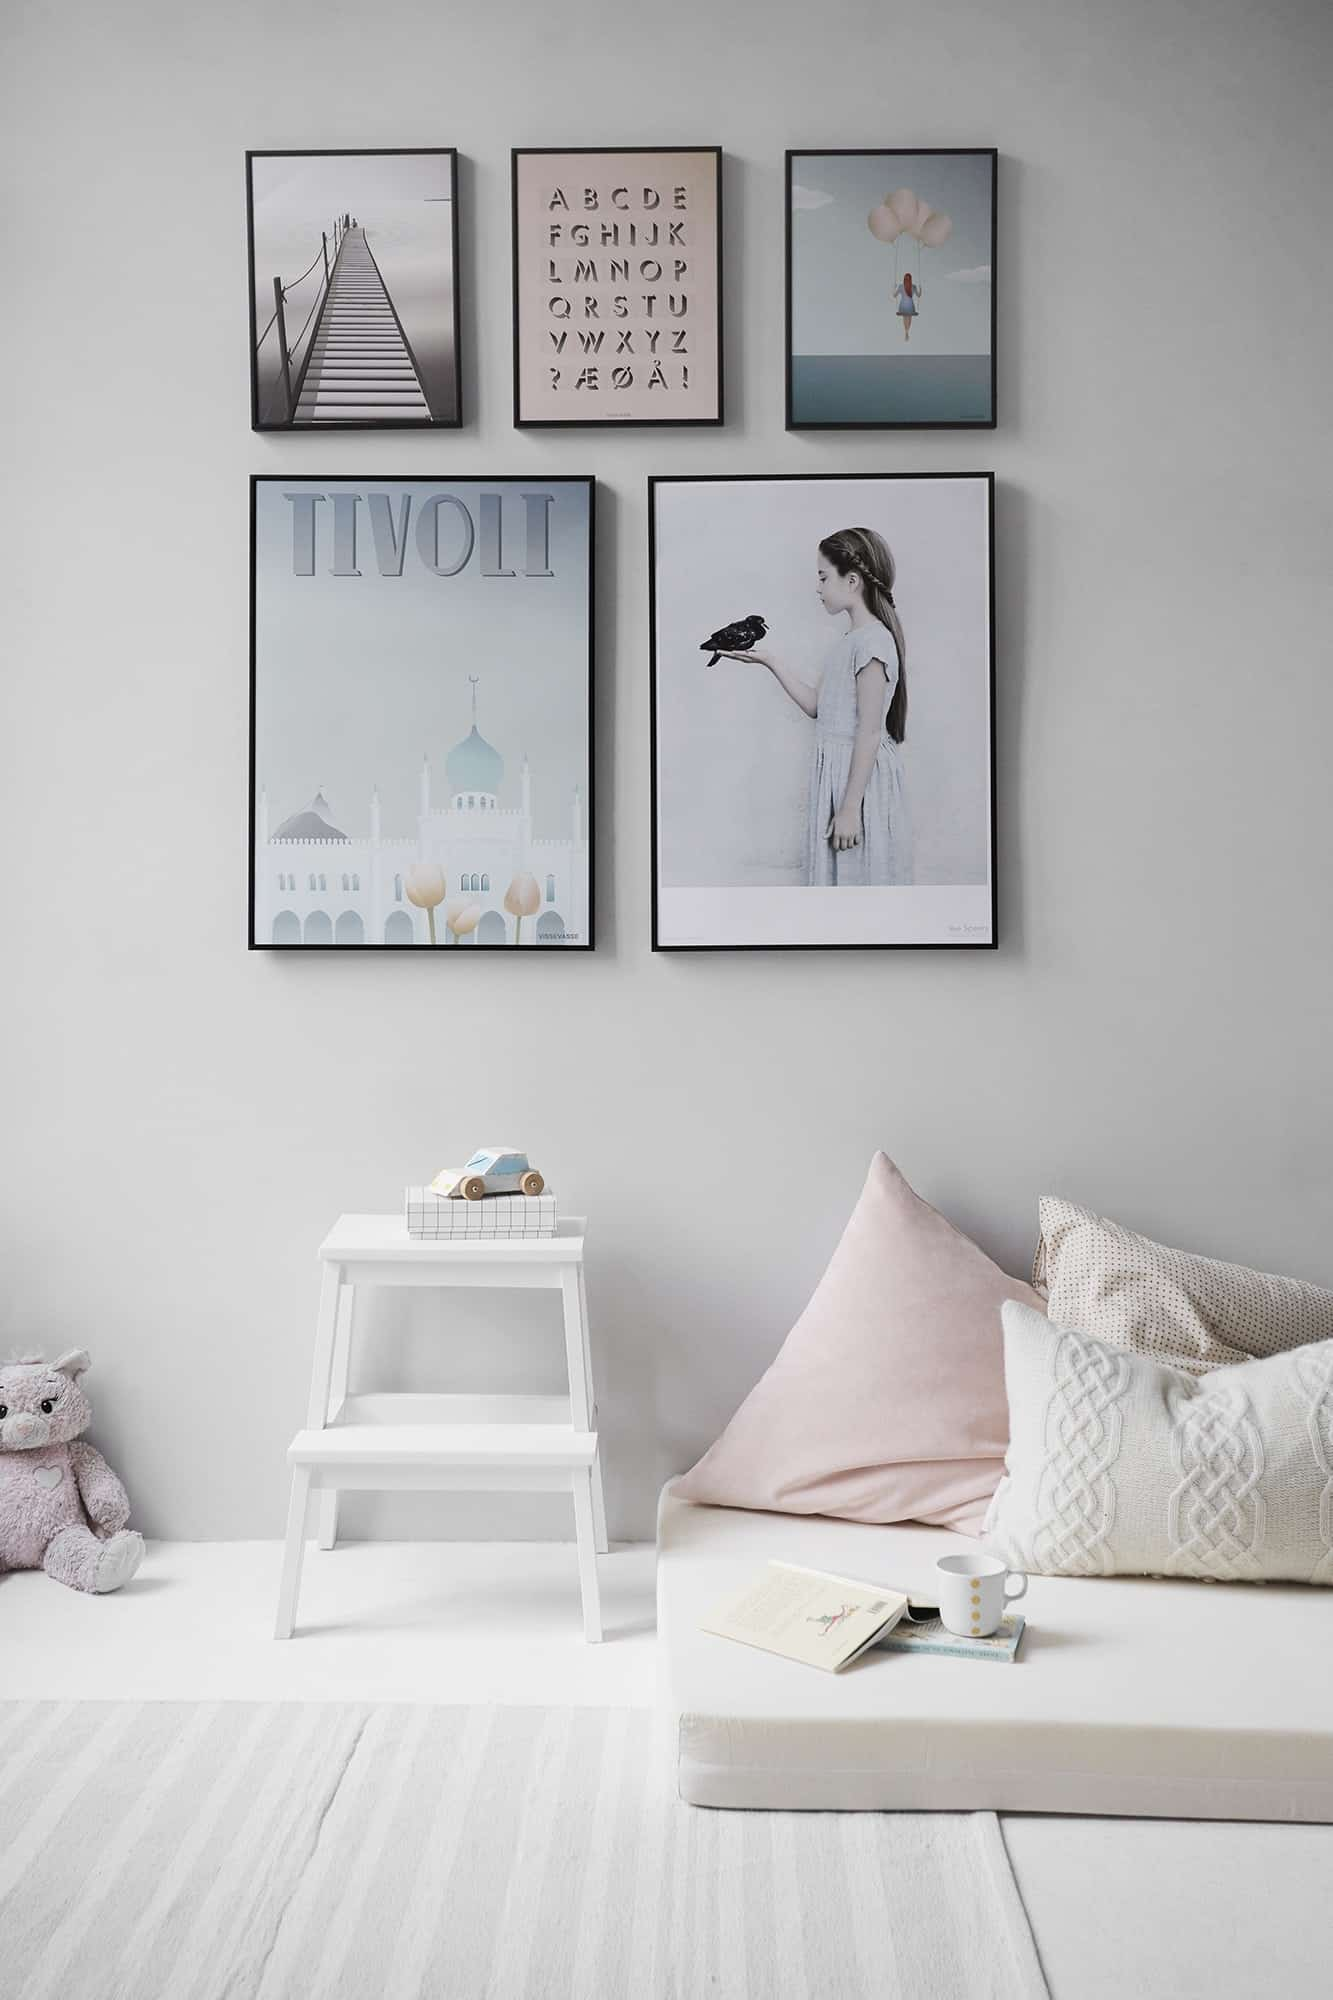 Home Decor Hacks To Create Your Own Home Decor